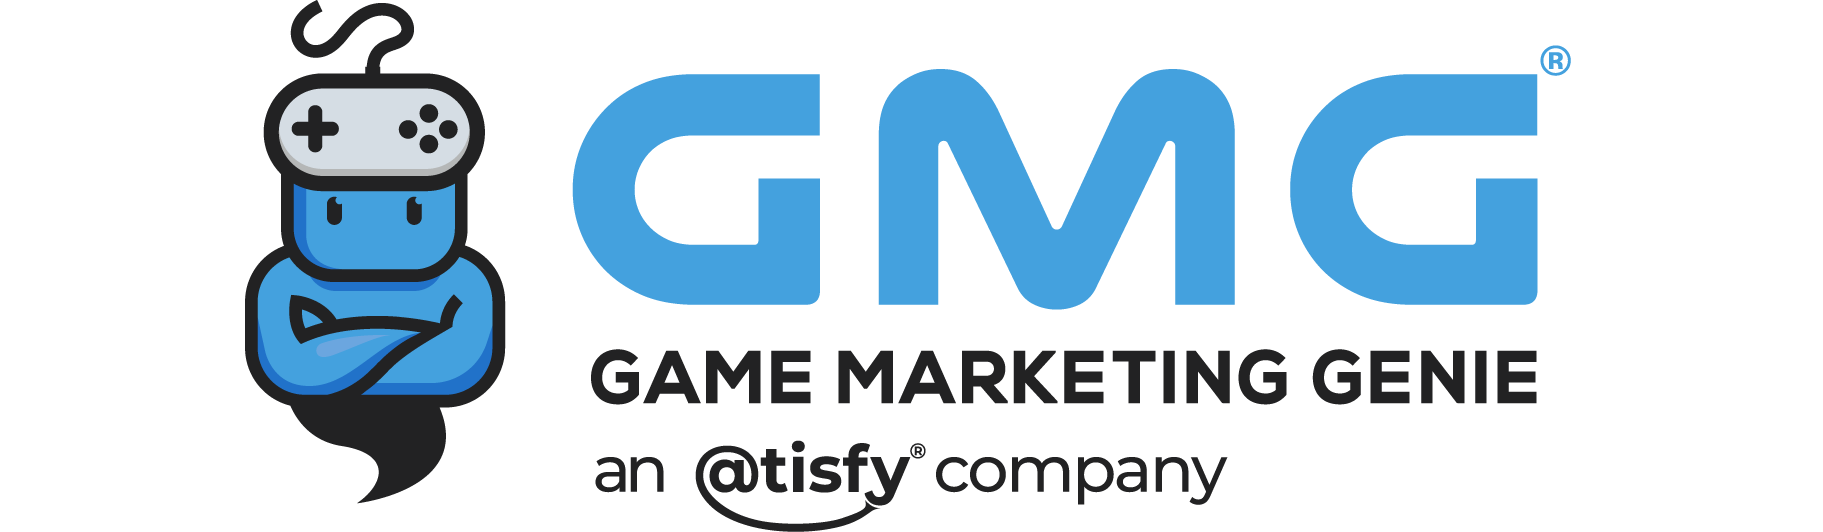 GameMG_AnAtisfyCo_Logo_RGB_Left_Aligned_Crop-Top-Bottom